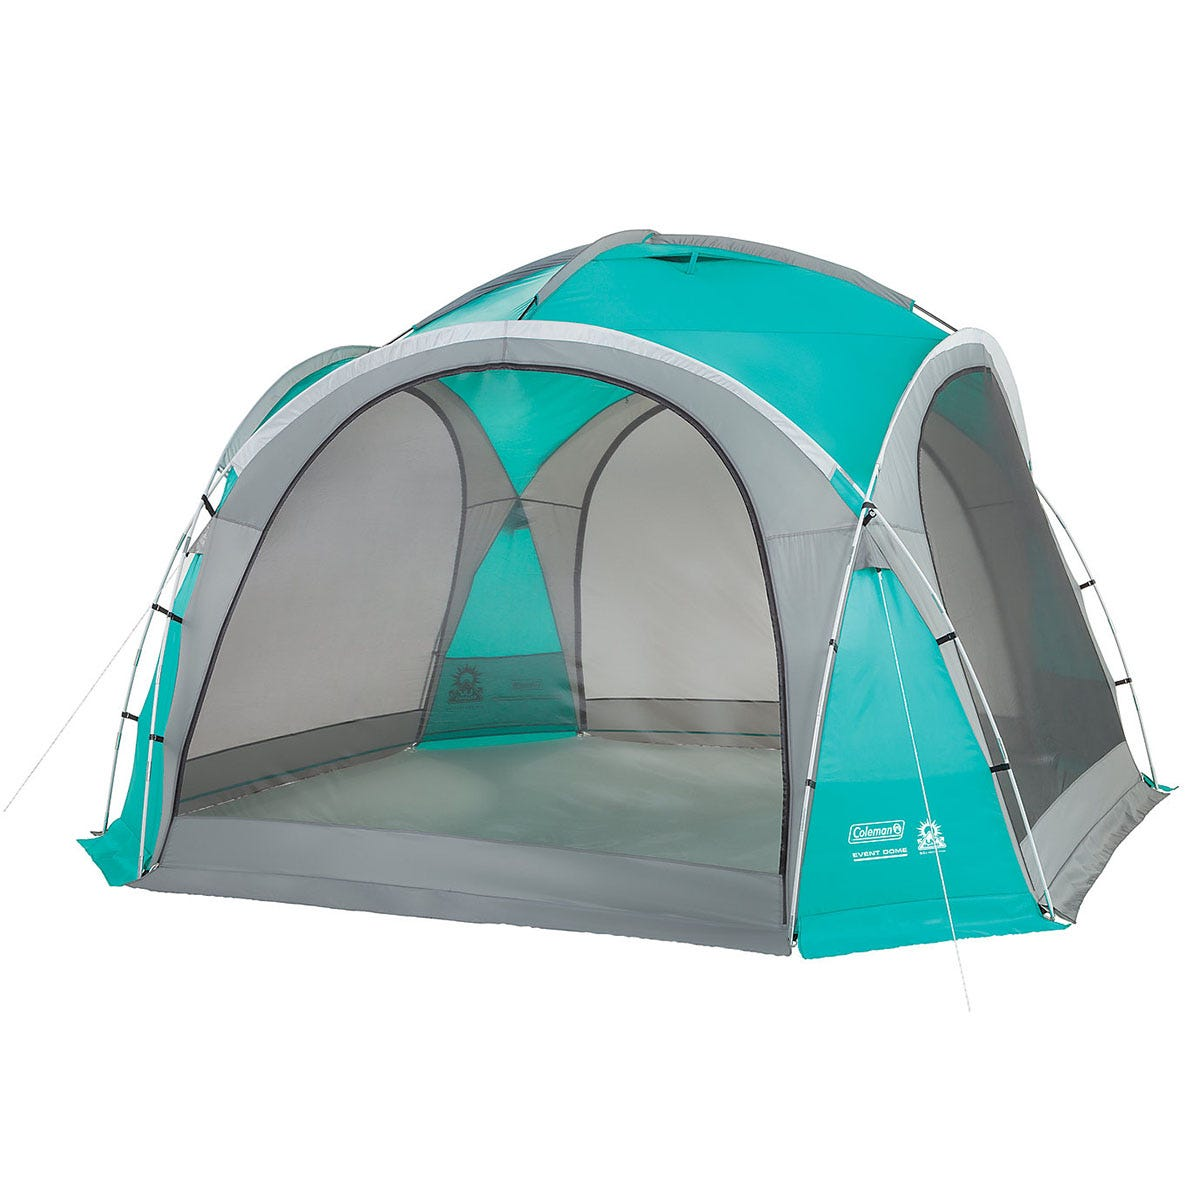 Coleman Gazebo Event Dome Shelter 3.65m with 4 Screen Walls - Teal & Grey